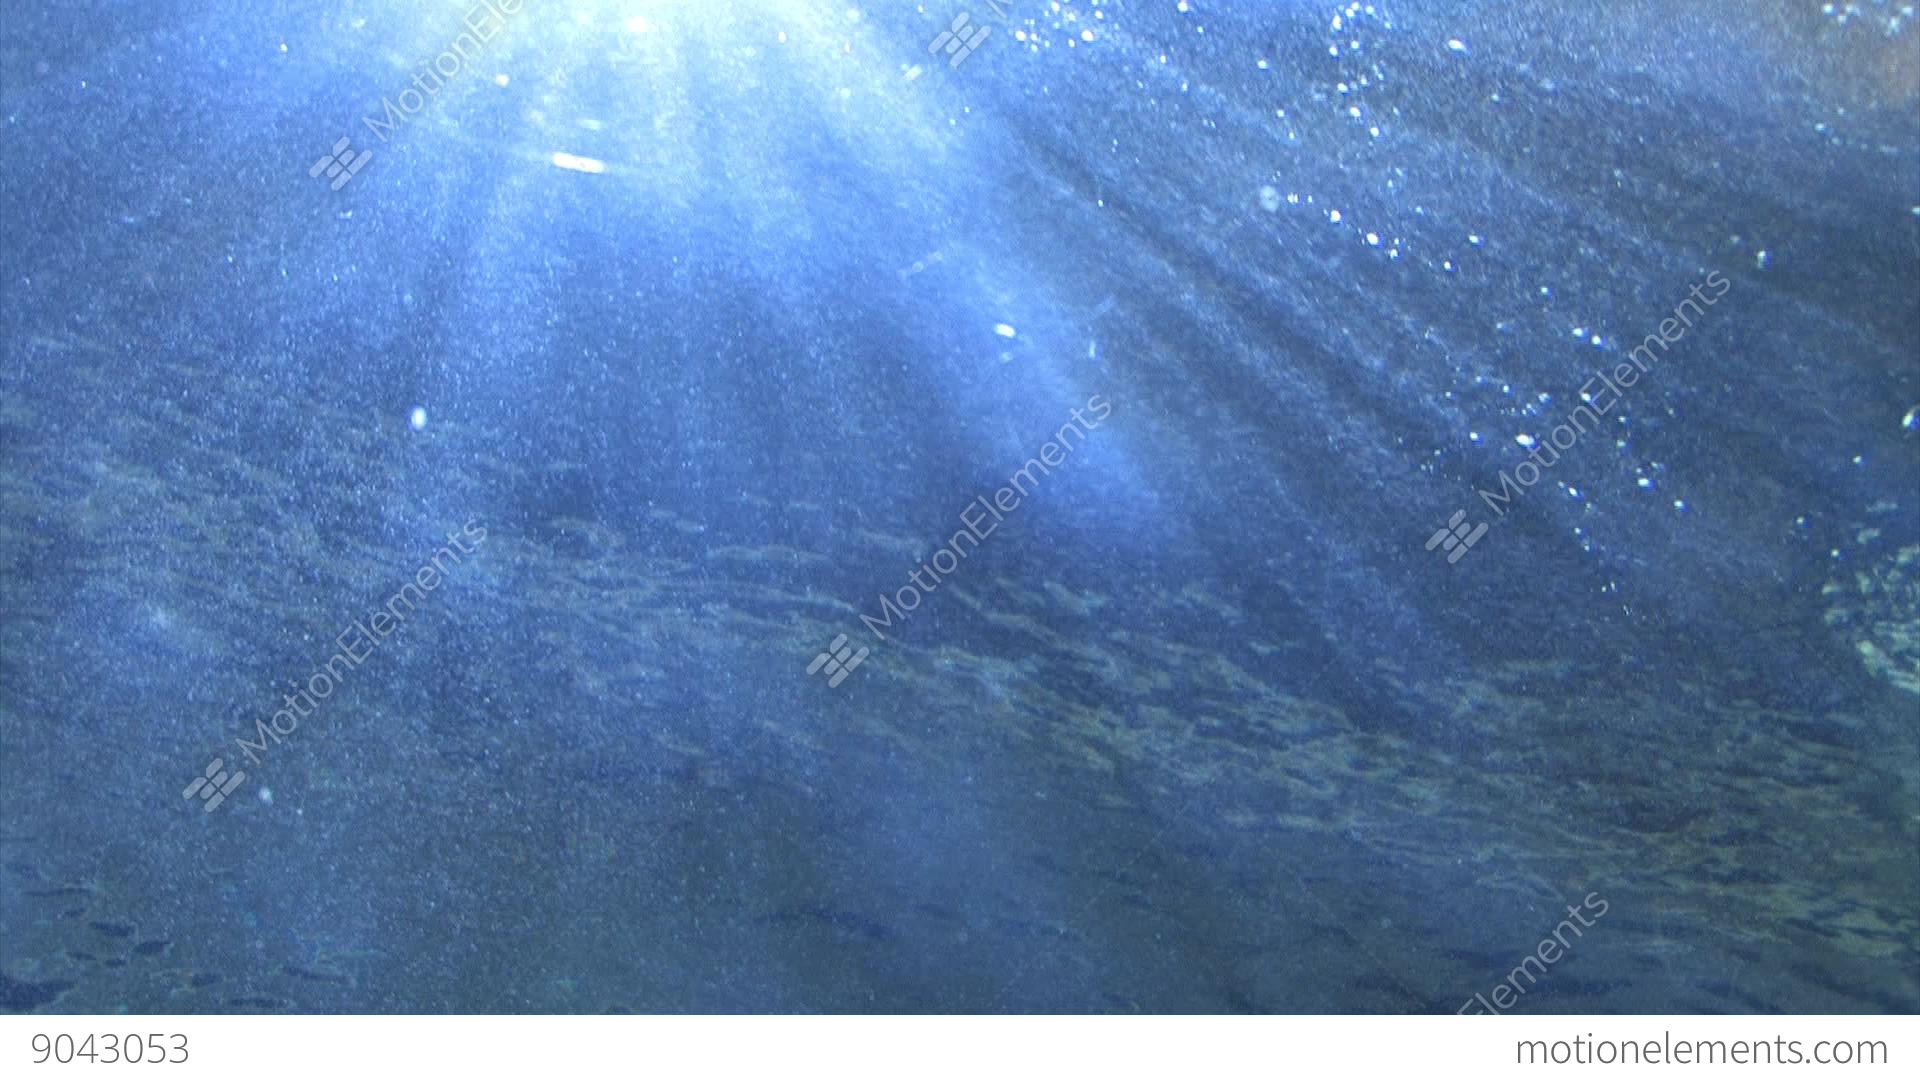 water video background